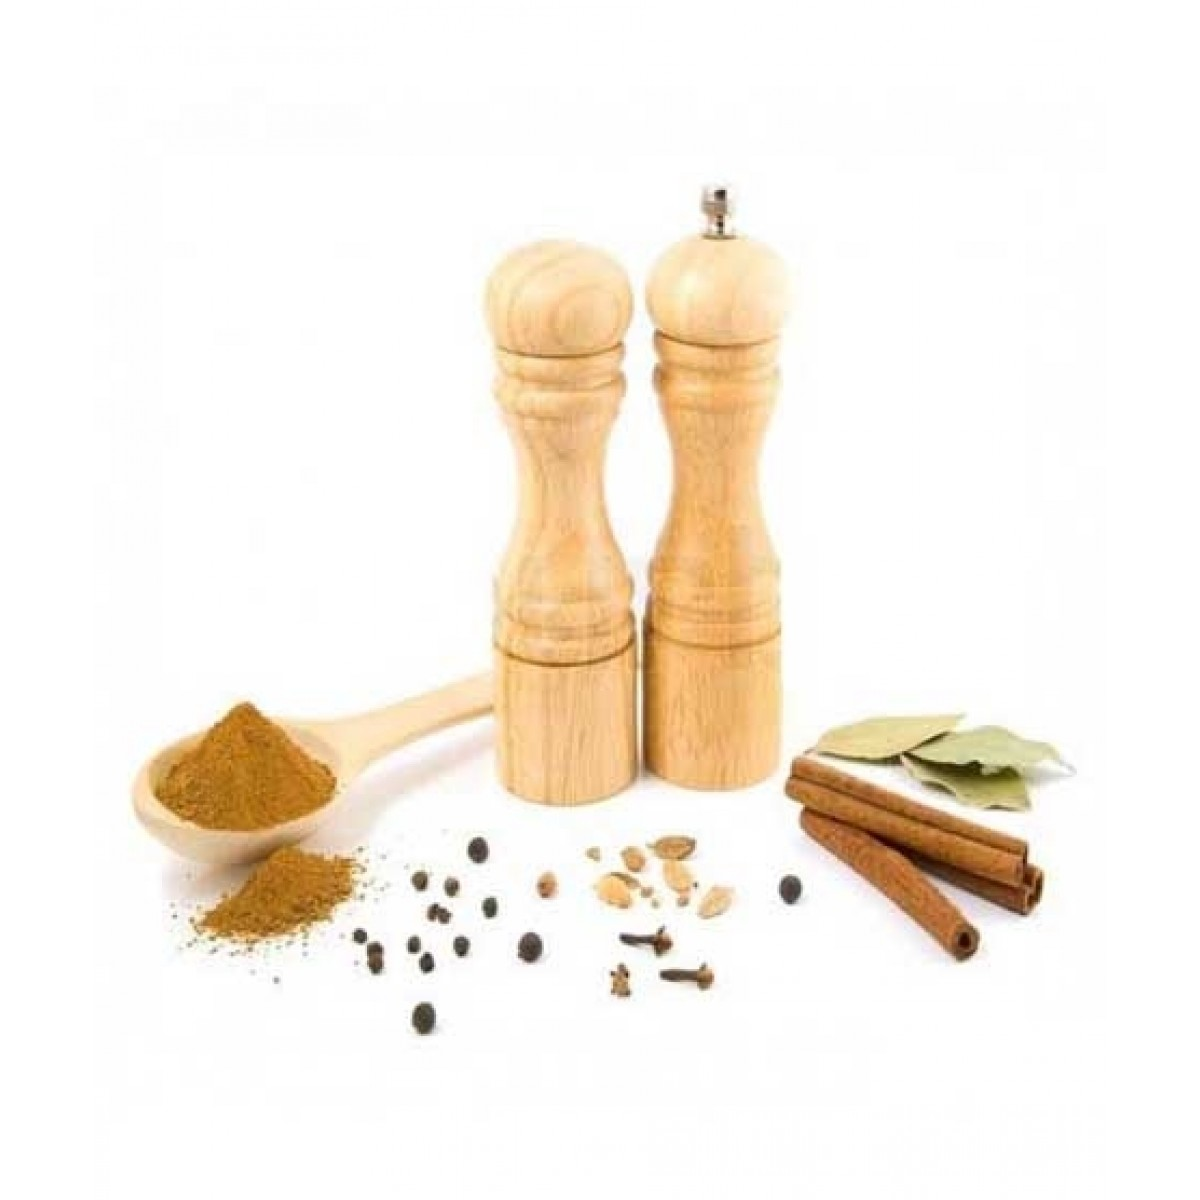 ORO Store Wooden Pepper Mill & Salt Shaker - Pack Of 2